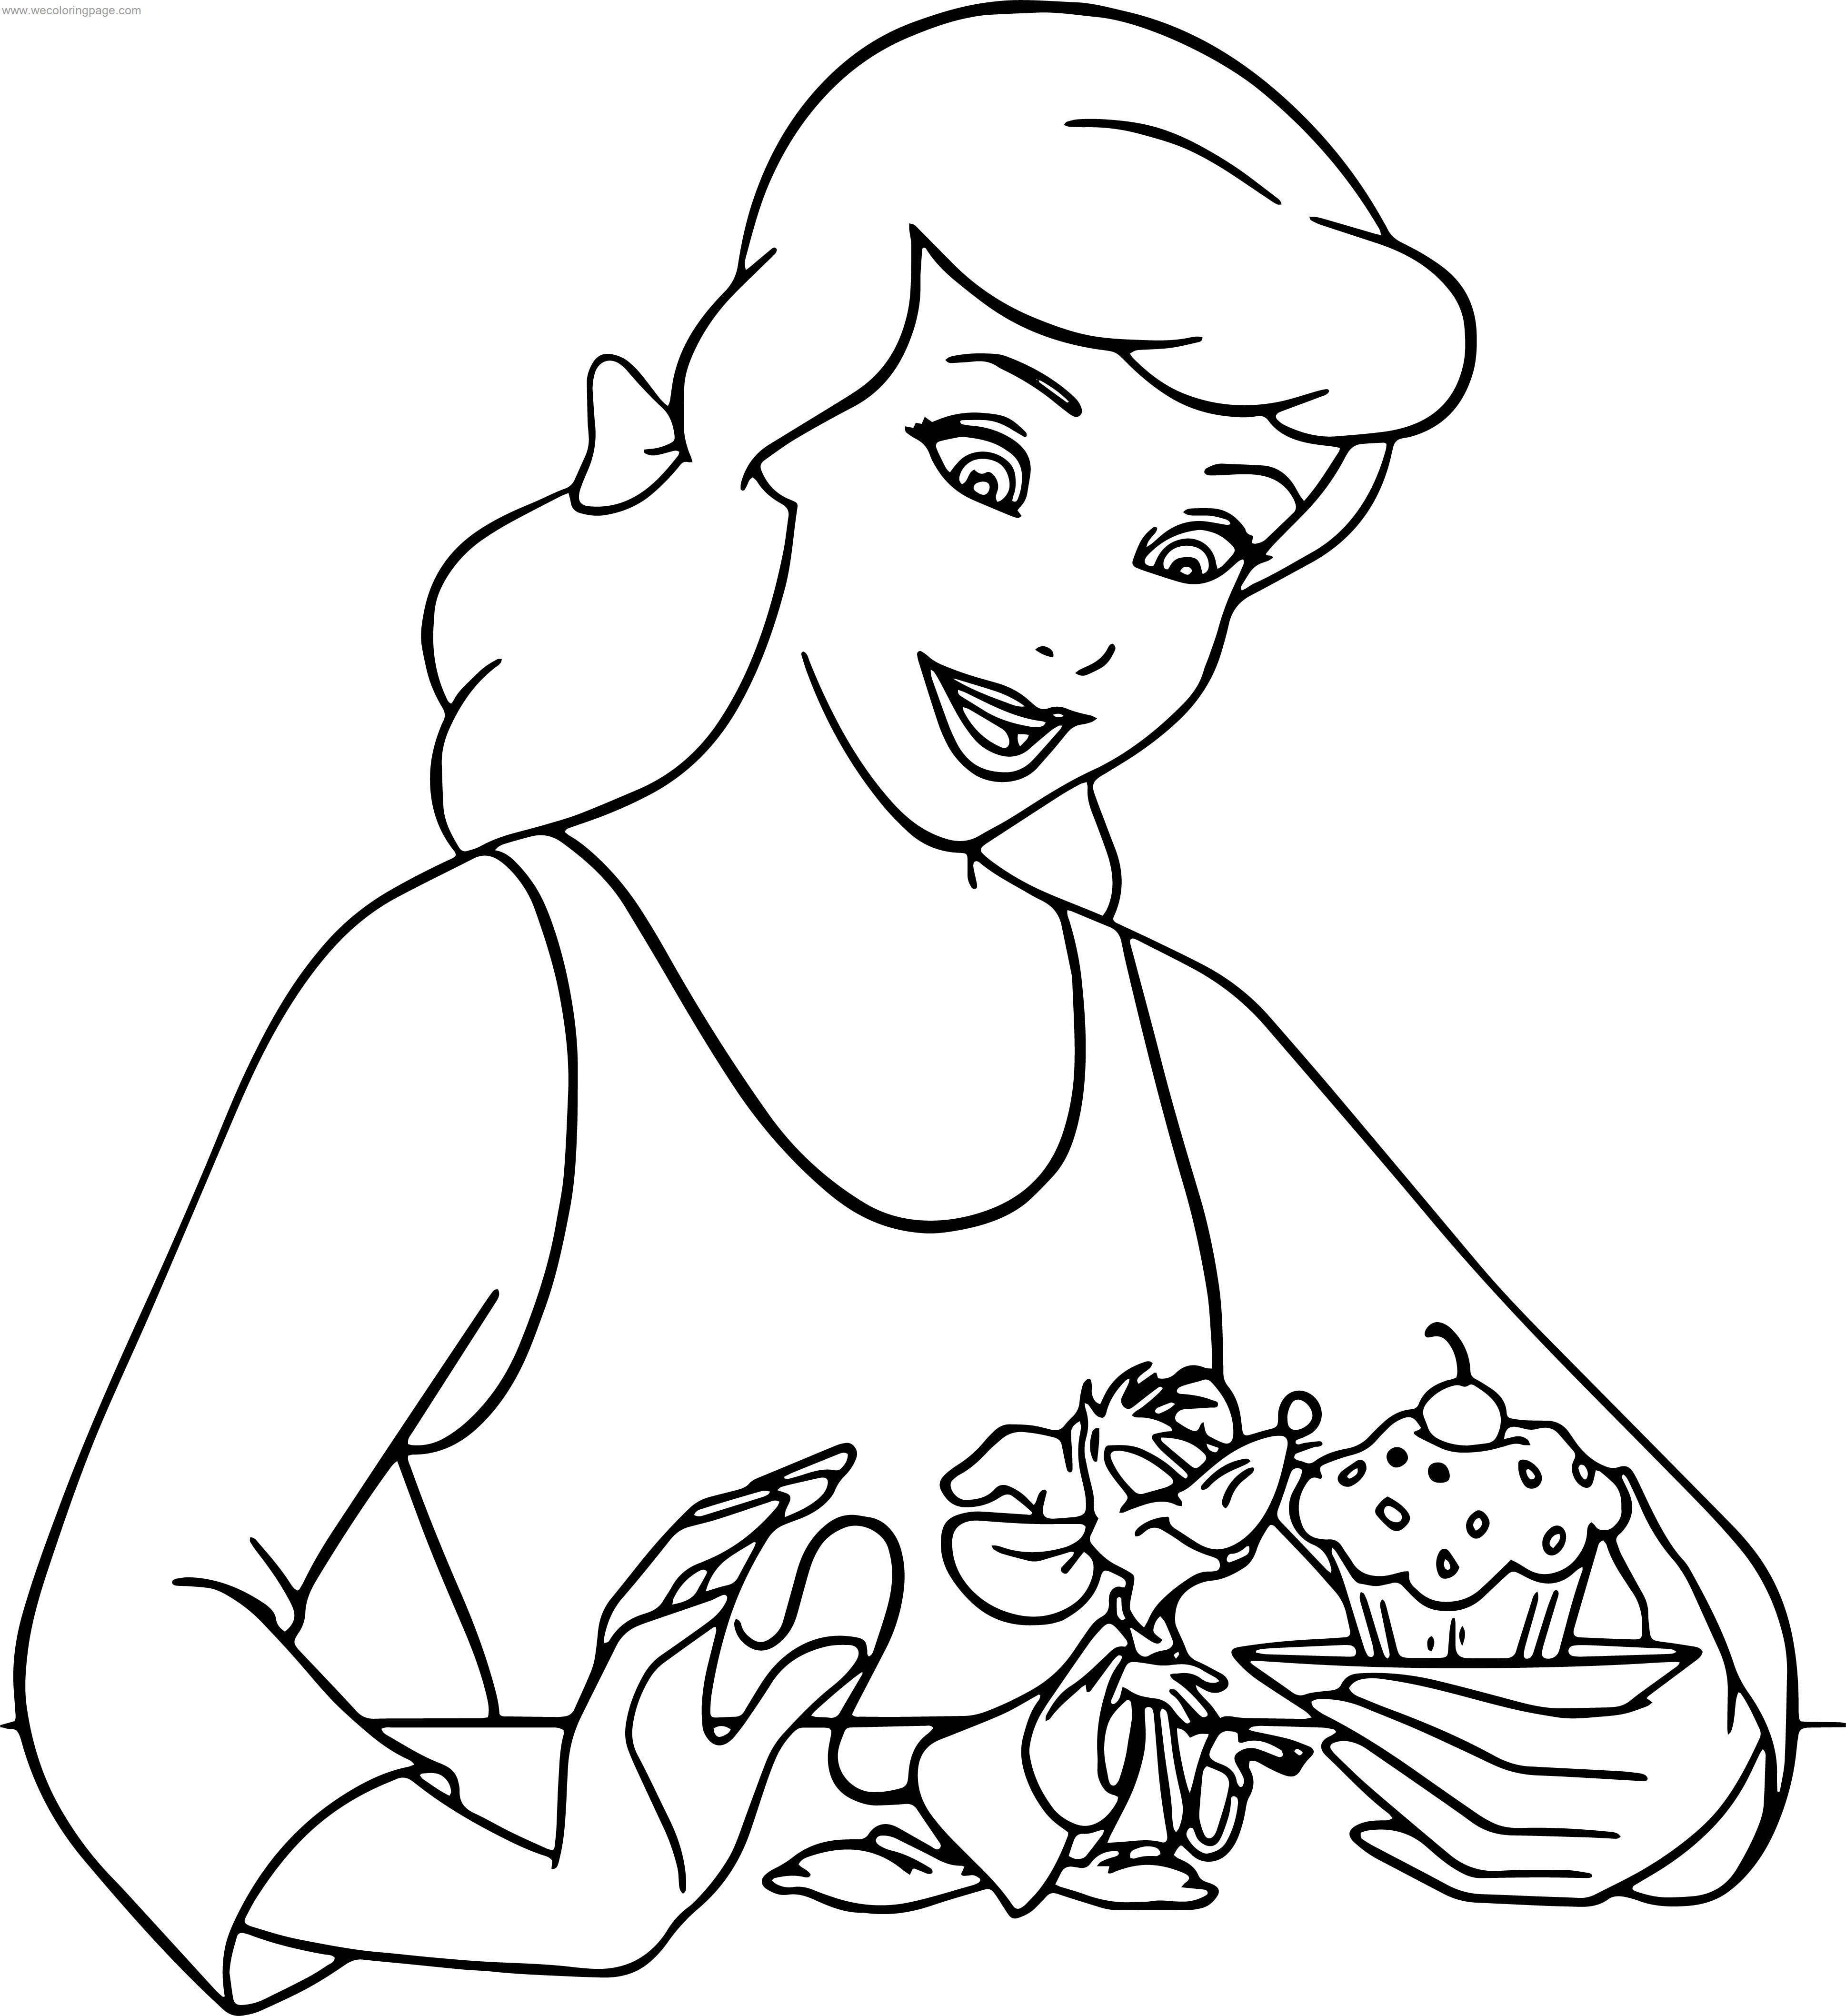 cinderella mice coloring pages - photo#7